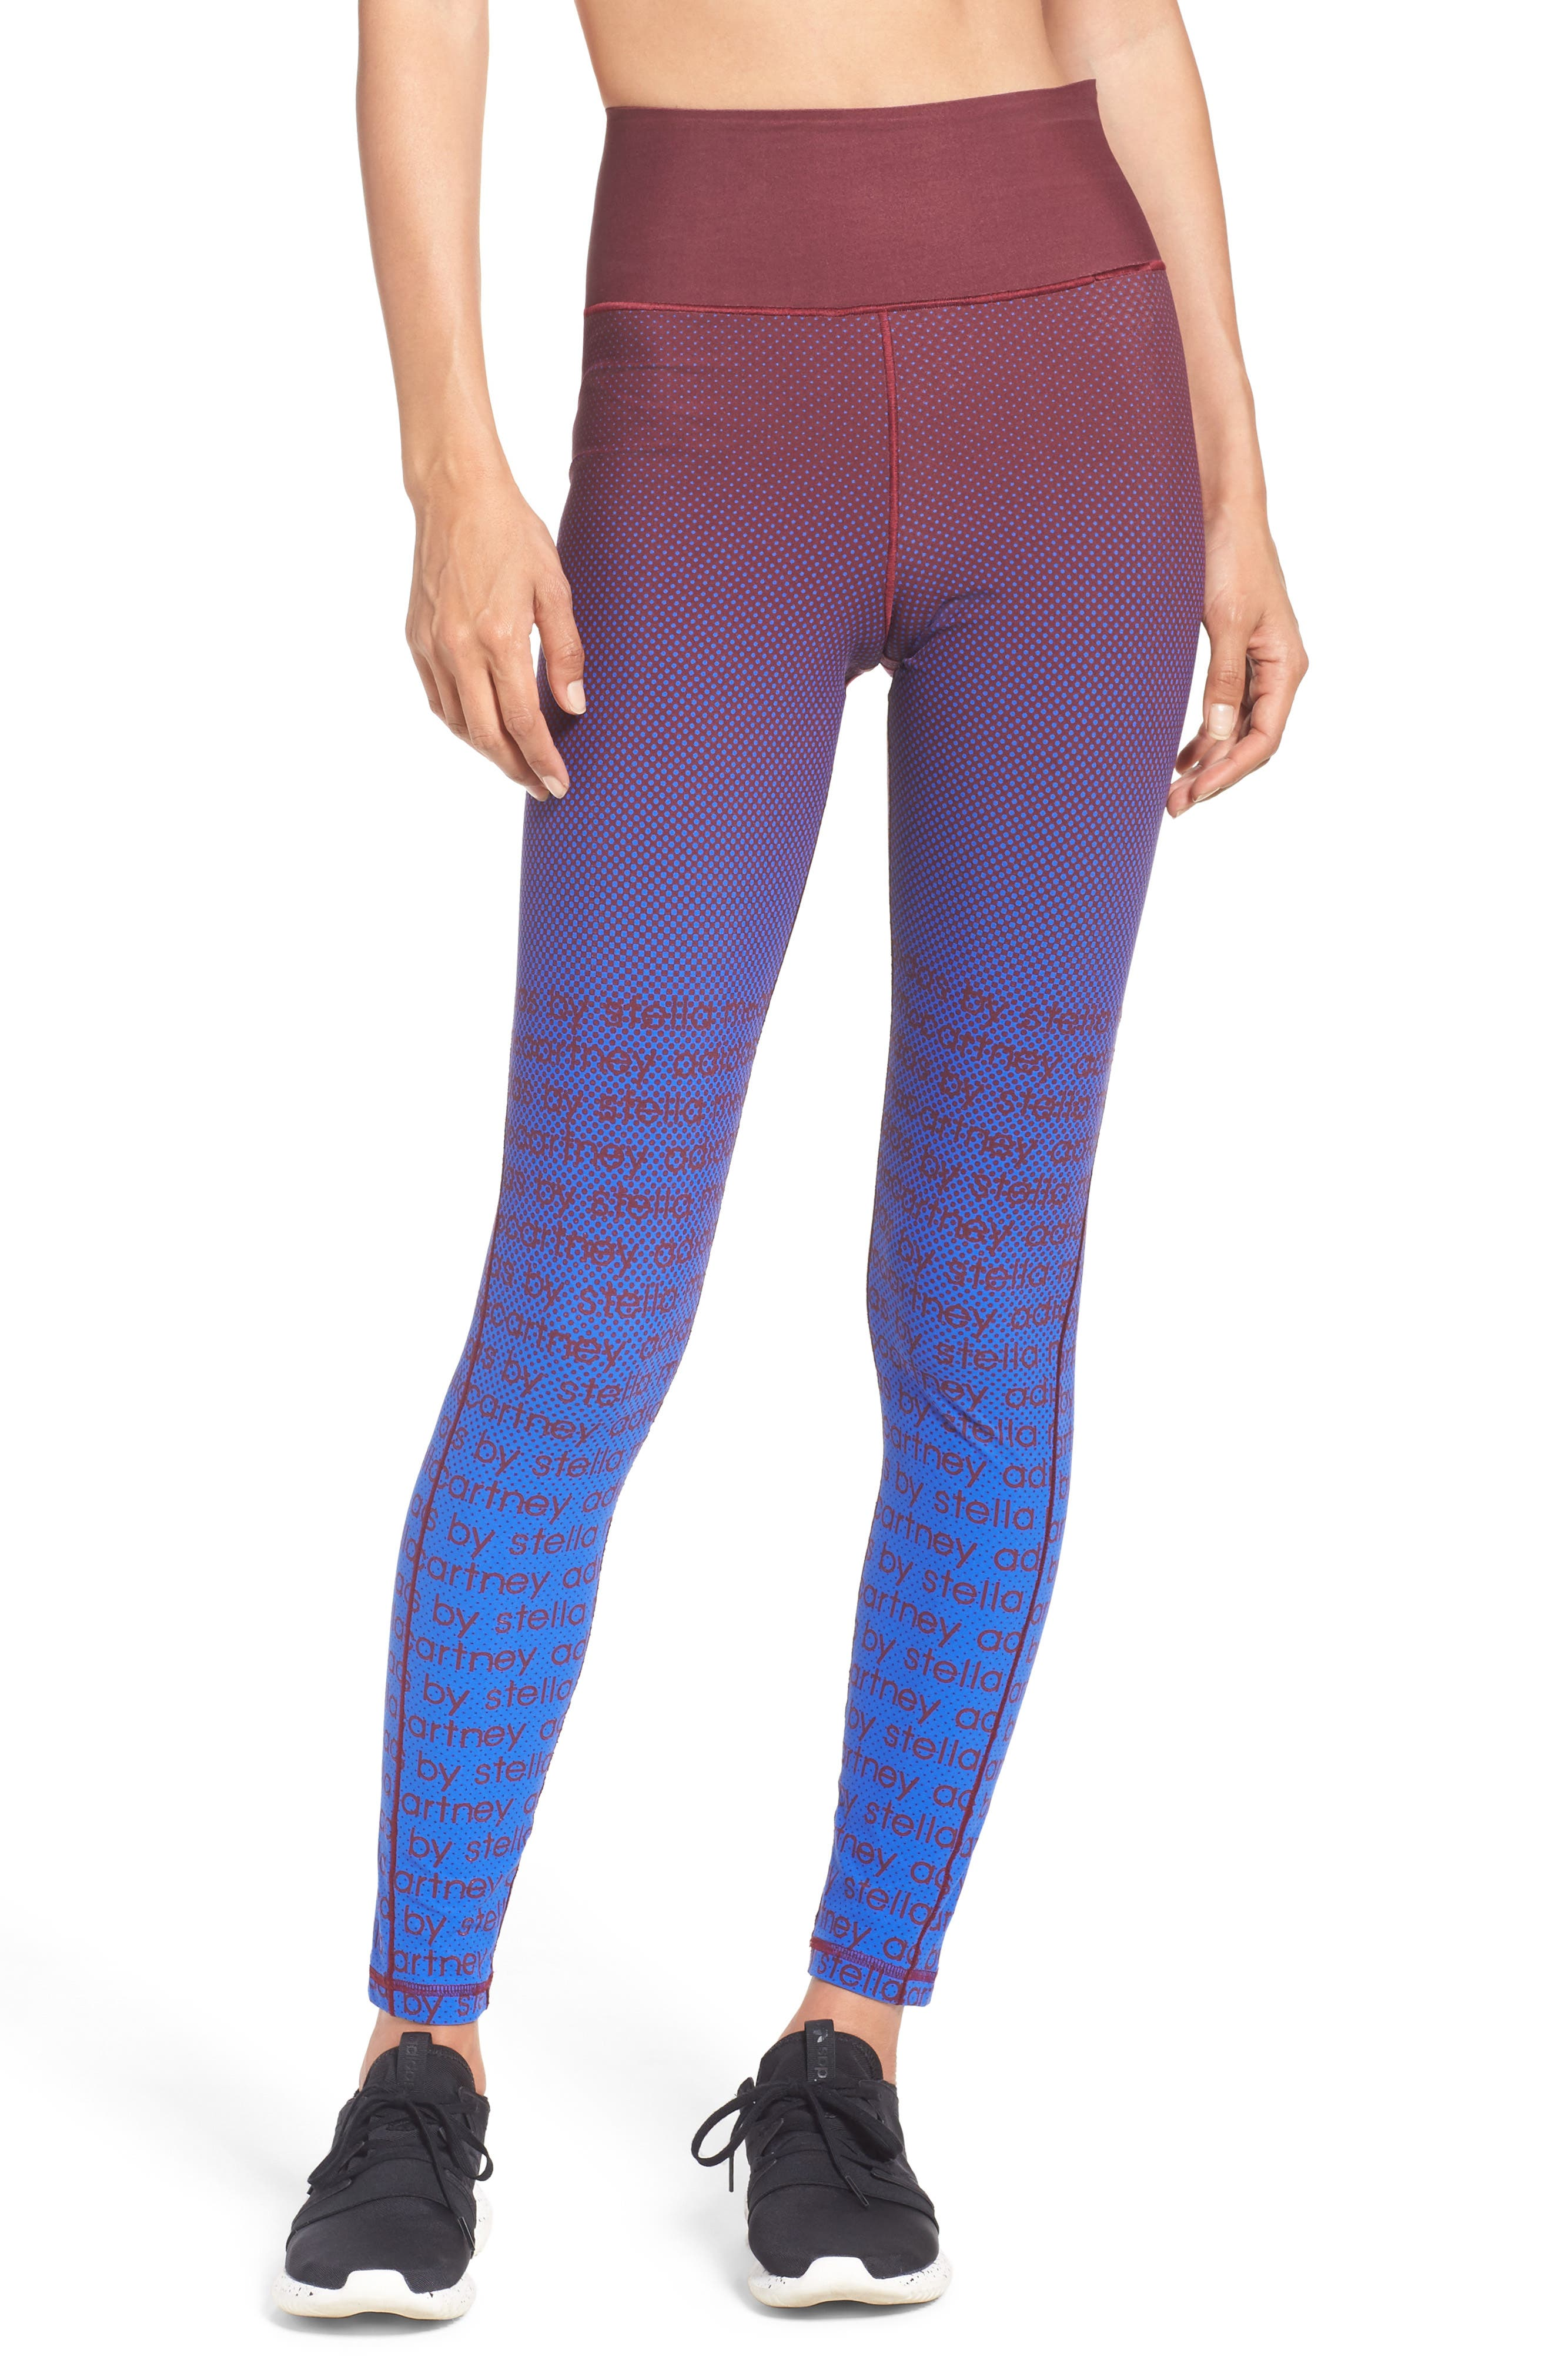 Training Tights,                         Main,                         color, Cherry Wood/ Bold Blue